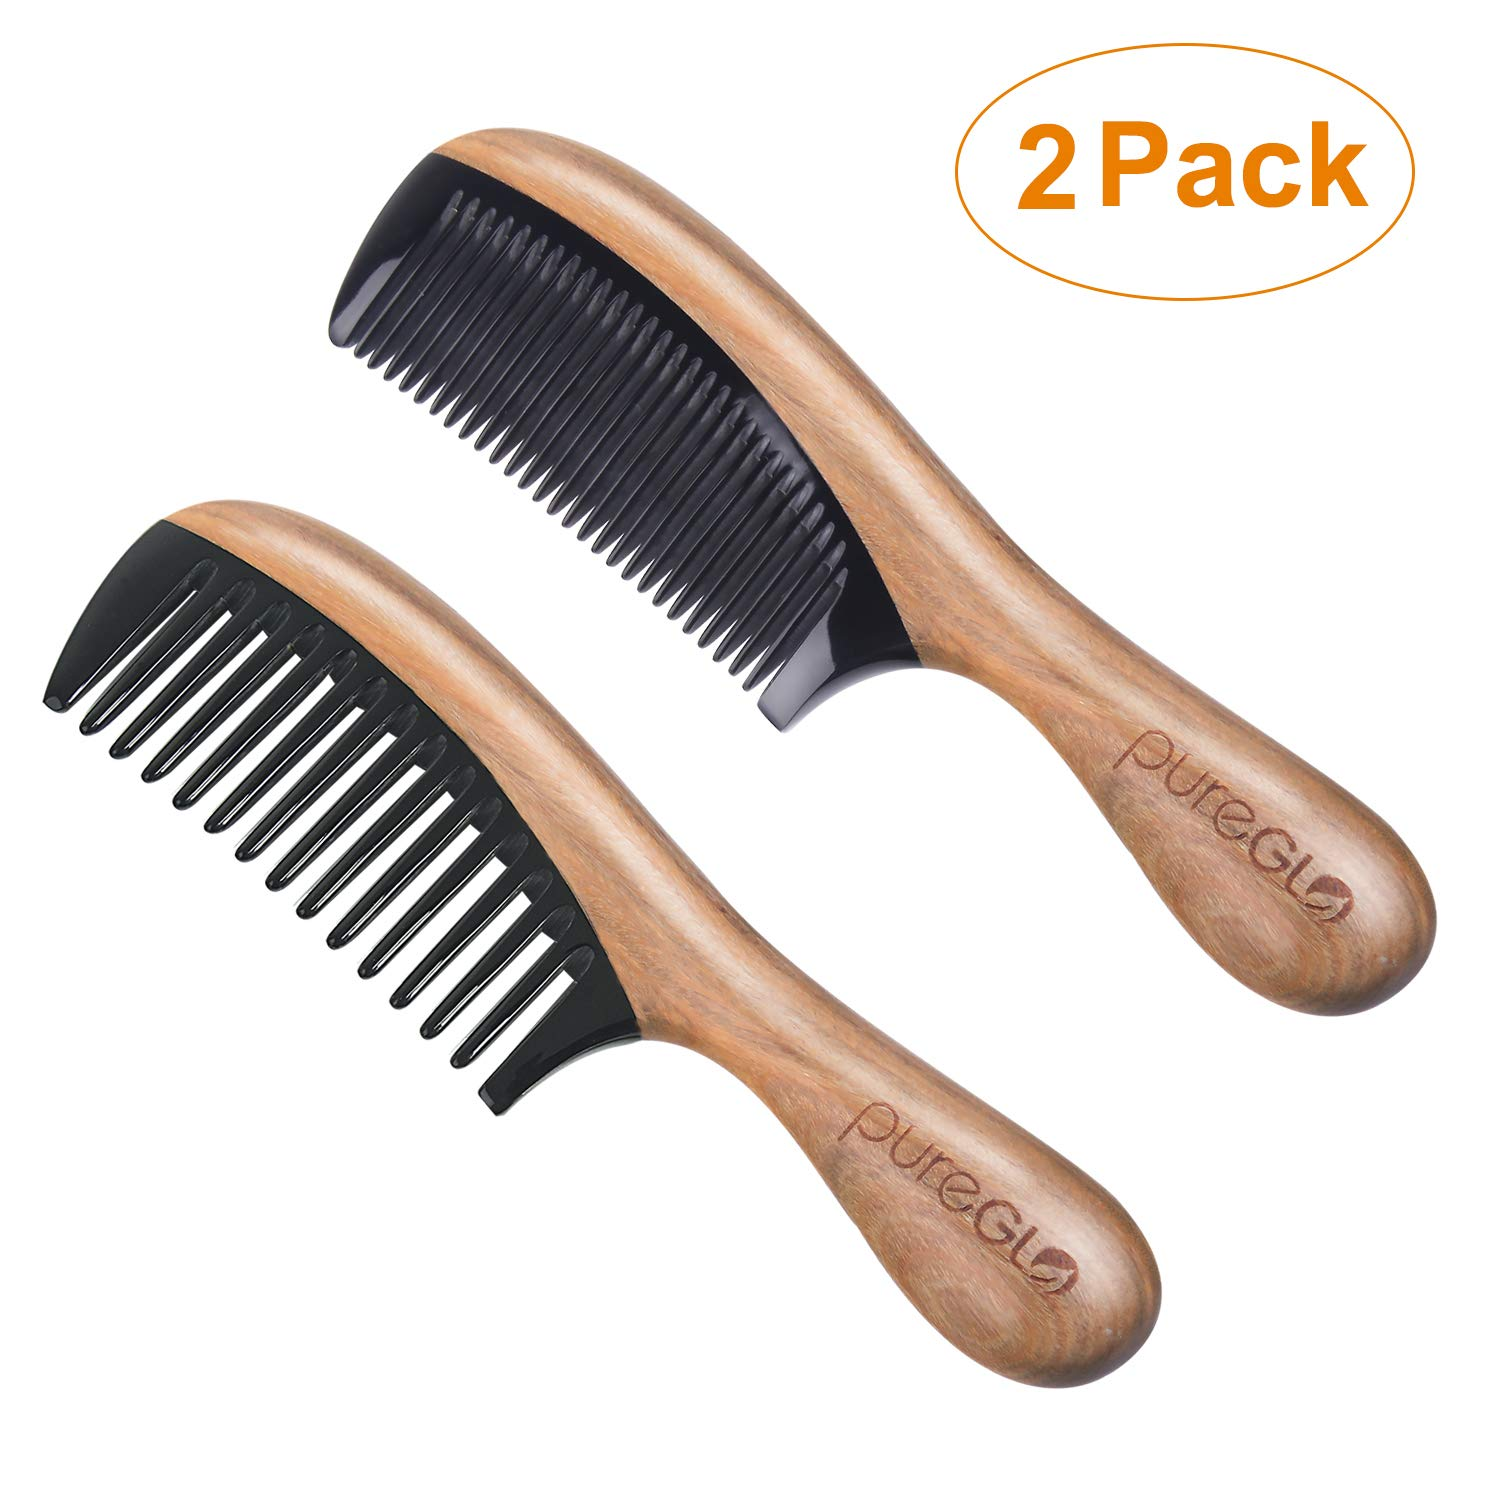 Wooden Hair Combs [Gift Box] - pureGLO Anti-Static Detangling Comb Set for Men Women Kids - Fine and Wide Tooth Combs for Straight Curly Wavy Dry Wet Thick or Fine Hair by pureGLO